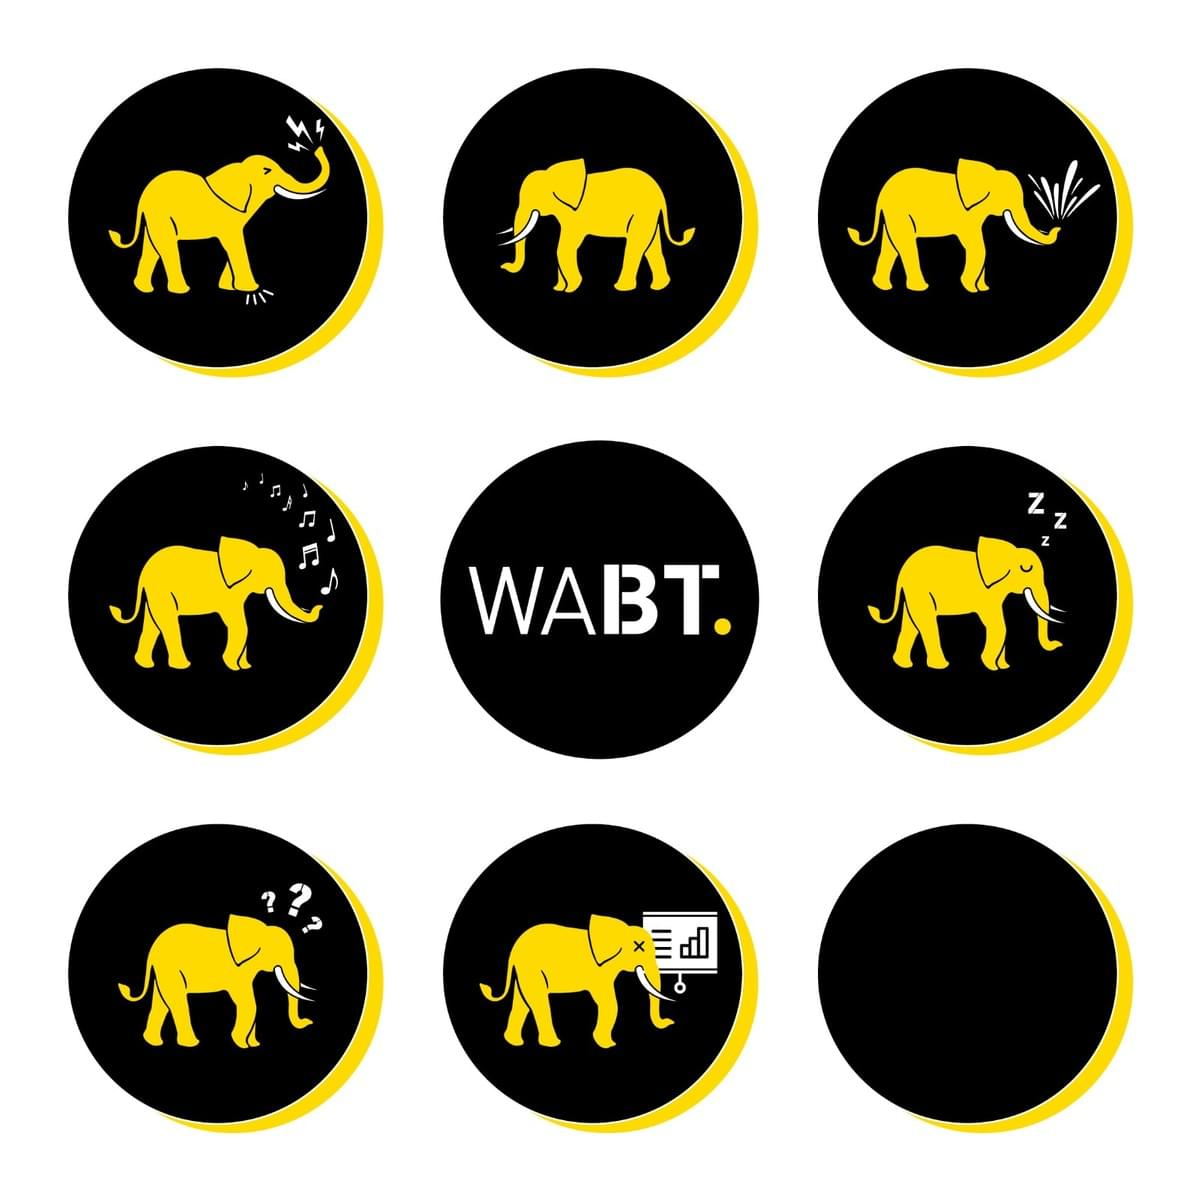 We Are Brass Tacks. Internal Communications Consultancy. 3x3 grid of black circles with yellow elephants inside.